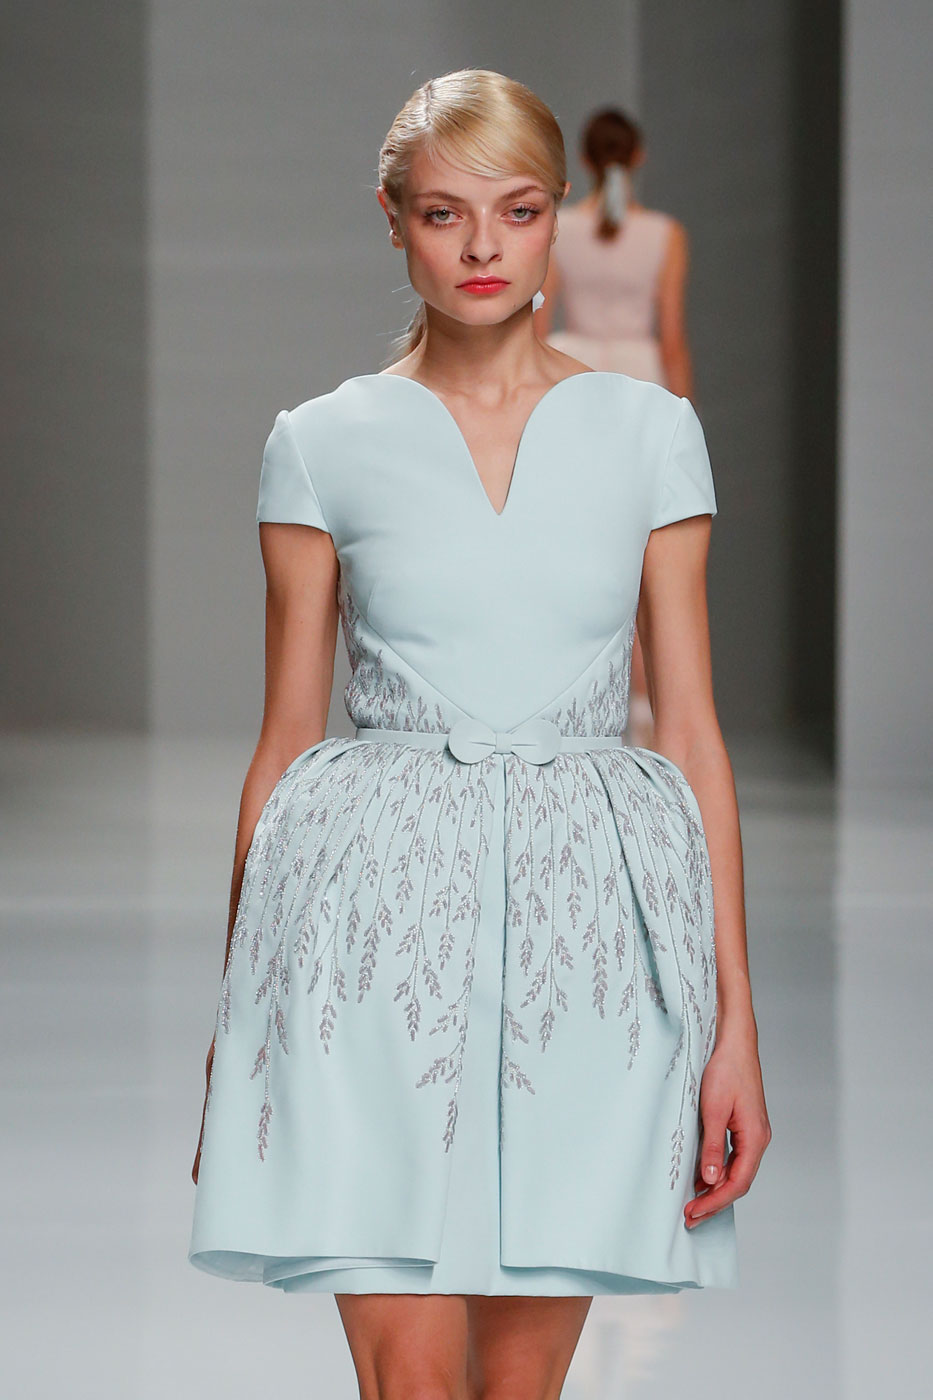 Georges-Hobeika-fashion-runway-show-haute-couture-paris-spring-2015-the-impression-04